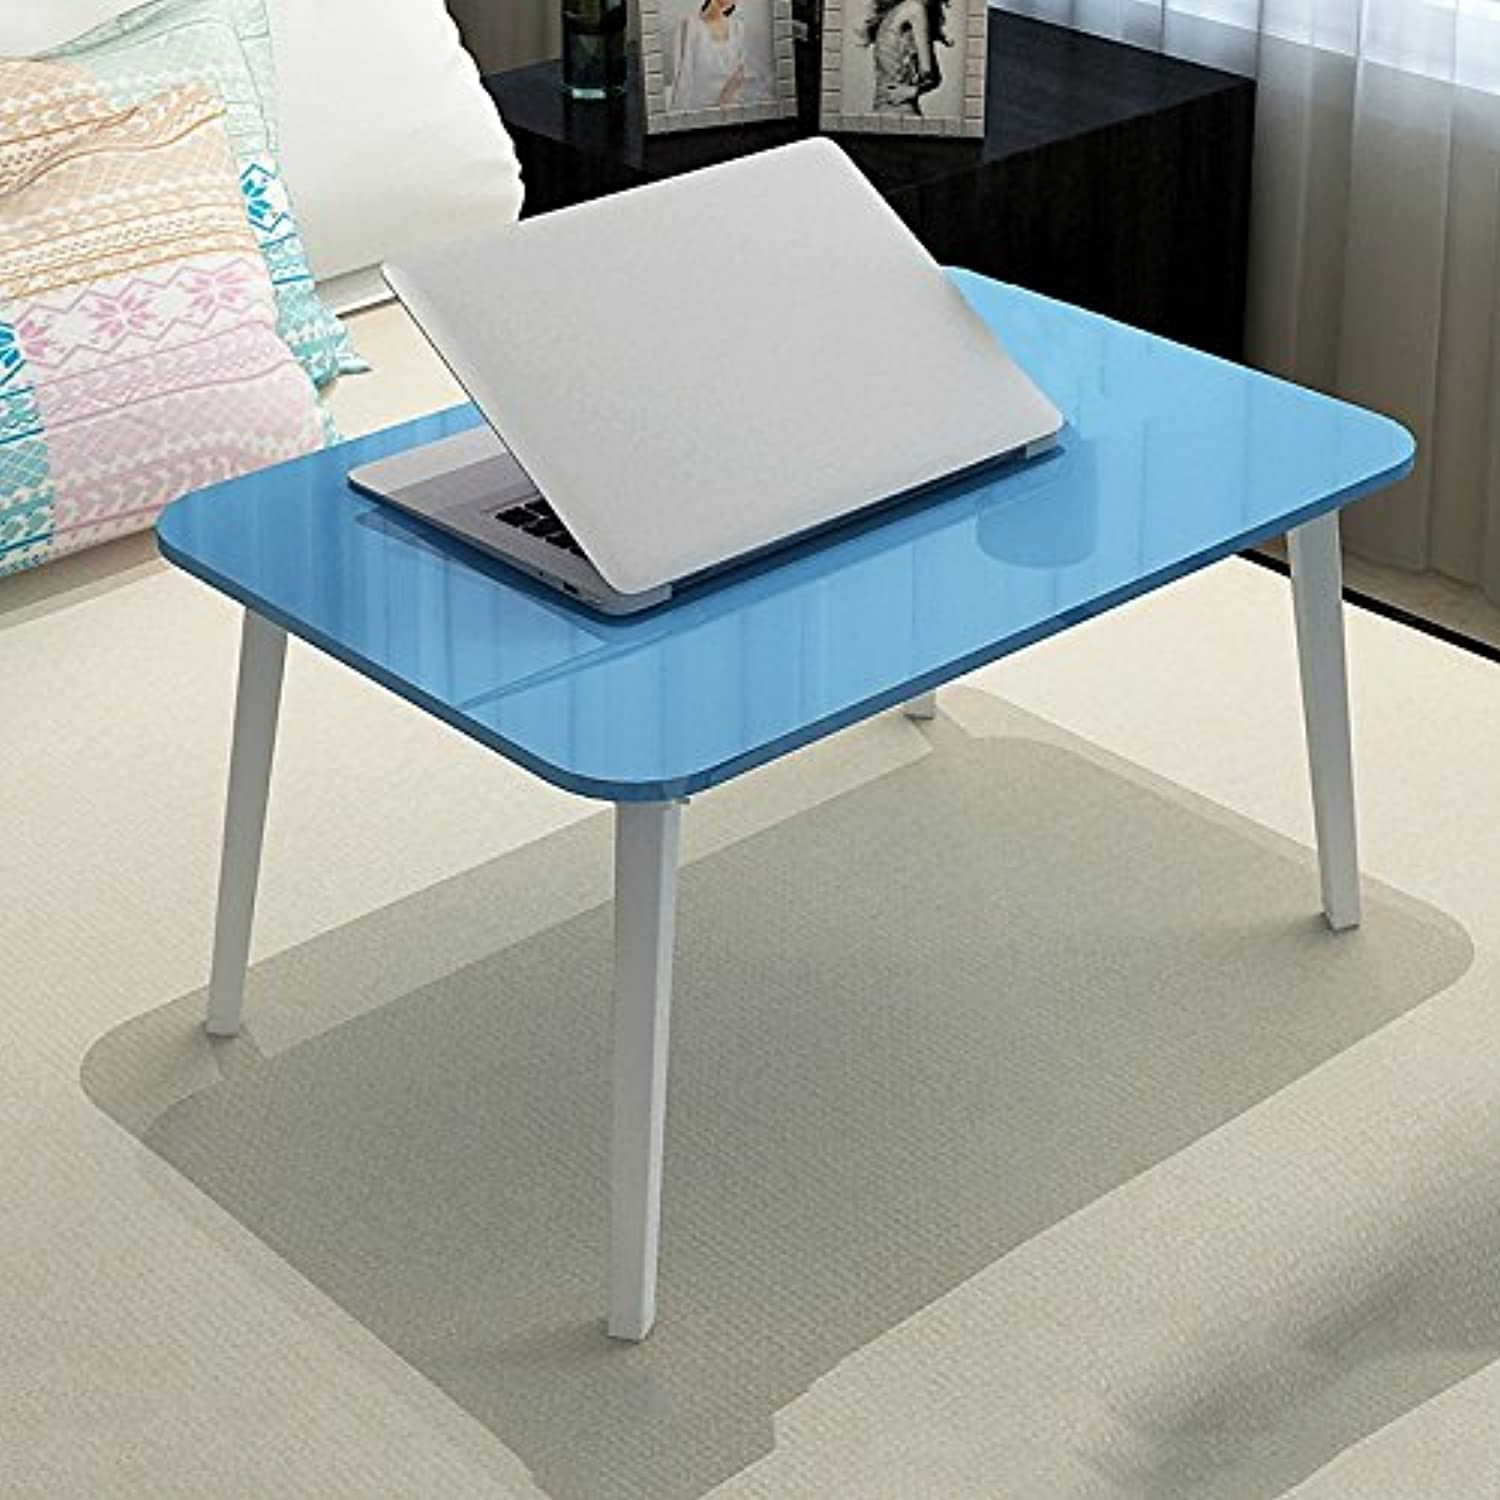 XUERUI Folding Tables Bed Use Folding Table Computer Desk Student Dormitory Use Writing Desk Beige bluee Brown Pink White